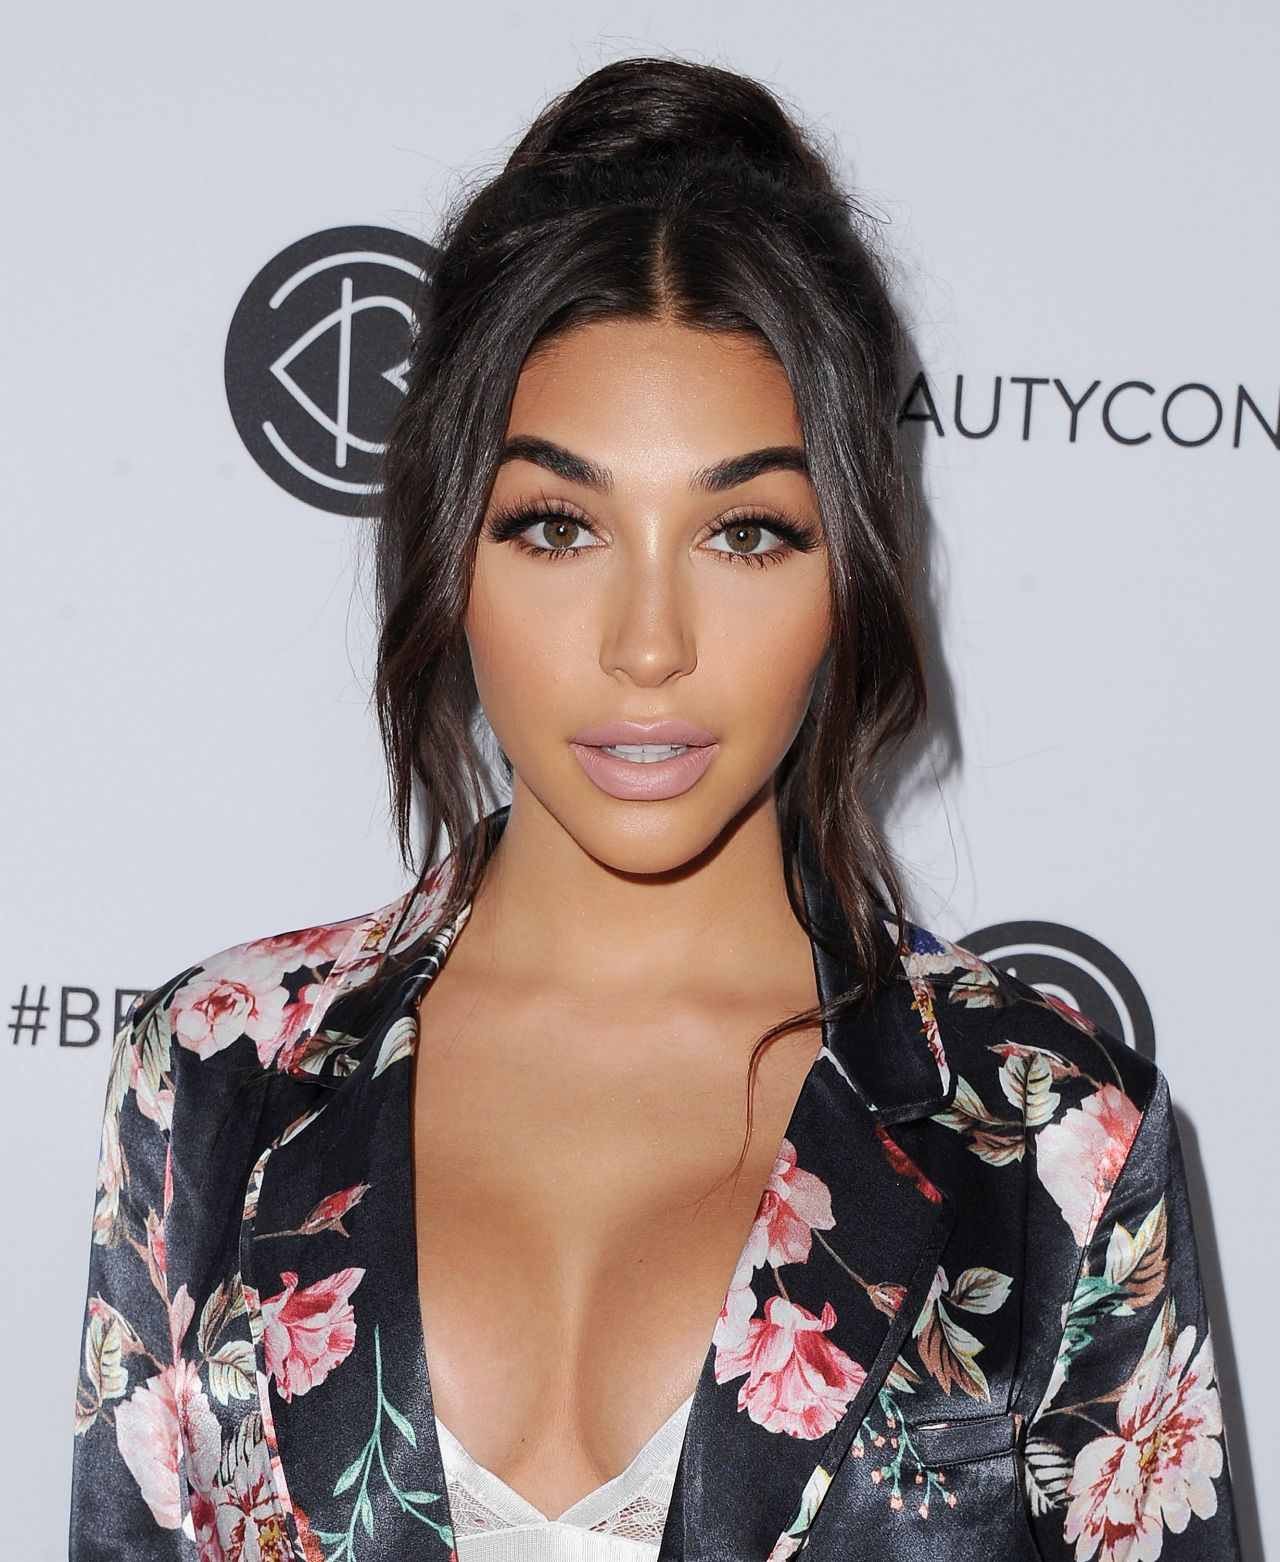 Chantel Jeffries Beautycon Festival In Los Angeles 08 12